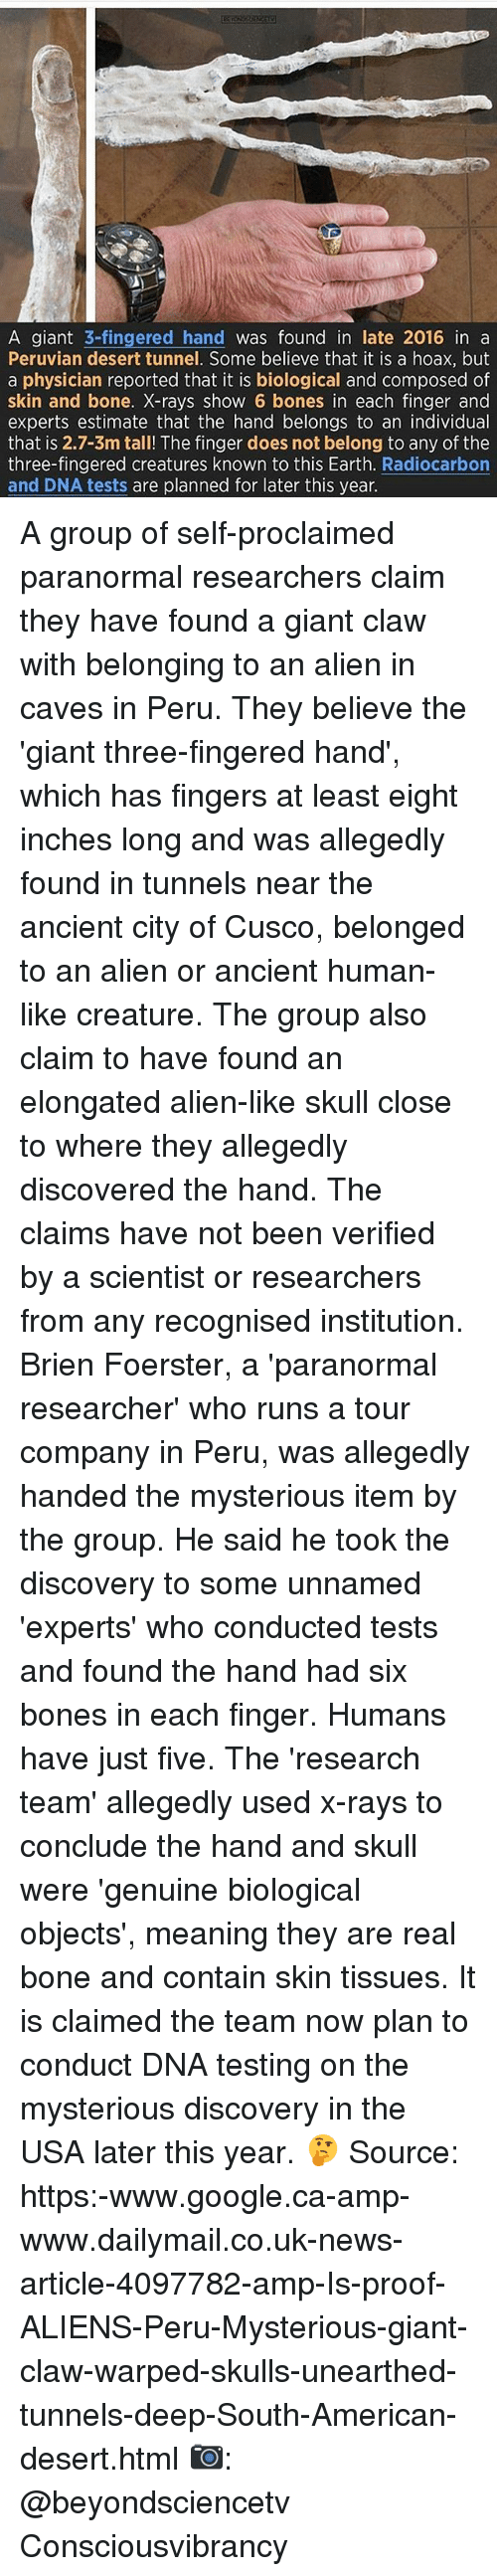 Proofs: A giant  3-fingered hand  was found in late 2016 in a  Peruvian desert tunnel. Some believe that it is a hoax, but  a physician reported that it is biological and composed of  skin and bone. X-rays show 6 bones in each finger and  experts estimate that the hand belongs to an individual  that is 2.7-3m tall! The finger does not belong to any of the  three-fingered creatures known to this Earth  Radiocarbon  and DNA tests are planned for later this year. A group of self-proclaimed paranormal researchers claim they have found a giant claw with belonging to an alien in caves in Peru. They believe the 'giant three-fingered hand', which has fingers at least eight inches long and was allegedly found in tunnels near the ancient city of Cusco, belonged to an alien or ancient human-like creature. The group also claim to have found an elongated alien-like skull close to where they allegedly discovered the hand. The claims have not been verified by a scientist or researchers from any recognised institution. Brien Foerster, a 'paranormal researcher' who runs a tour company in Peru, was allegedly handed the mysterious item by the group. He said he took the discovery to some unnamed 'experts' who conducted tests and found the hand had six bones in each finger. Humans have just five. The 'research team' allegedly used x-rays to conclude the hand and skull were 'genuine biological objects', meaning they are real bone and contain skin tissues. It is claimed the team now plan to conduct DNA testing on the mysterious discovery in the USA later this year. 🤔 Source: https:-www.google.ca-amp-www.dailymail.co.uk-news-article-4097782-amp-Is-proof-ALIENS-Peru-Mysterious-giant-claw-warped-skulls-unearthed-tunnels-deep-South-American-desert.html 📷: @beyondsciencetv Consciousvibrancy